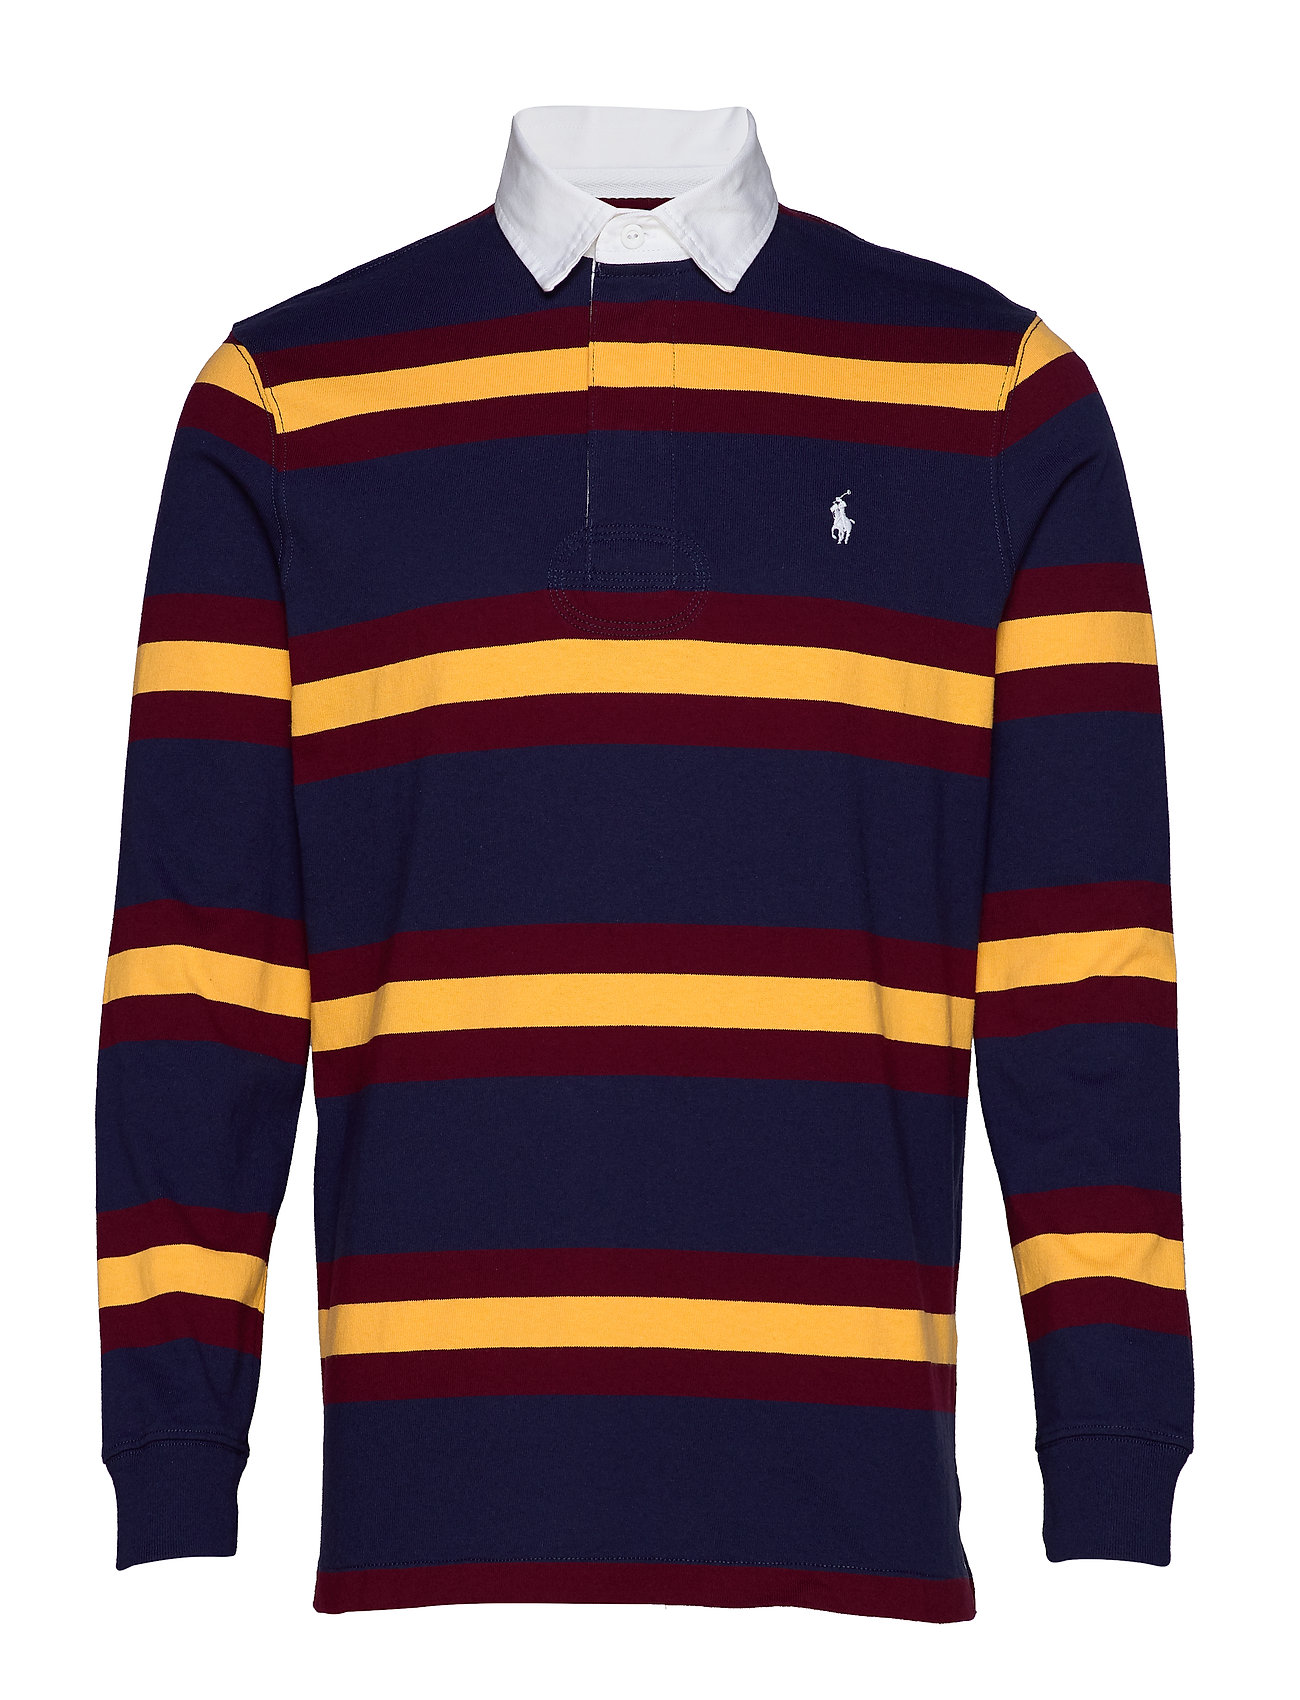 Lauren The Shirtfrench Rugby Navy Iconic MultiPolo Ralph LAjq435R